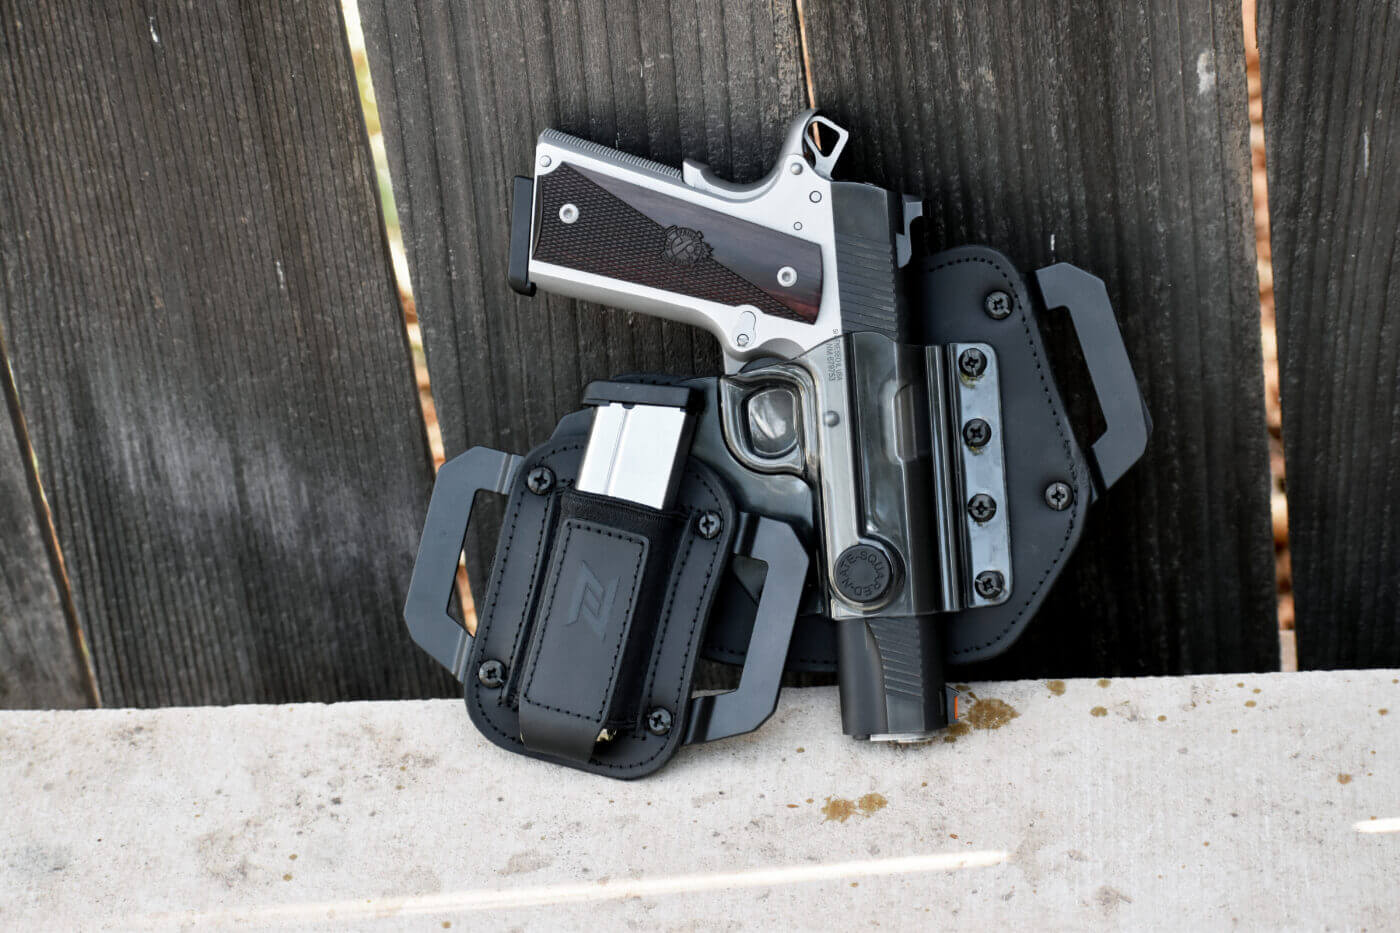 N8 Tactical OWB holster for CCW